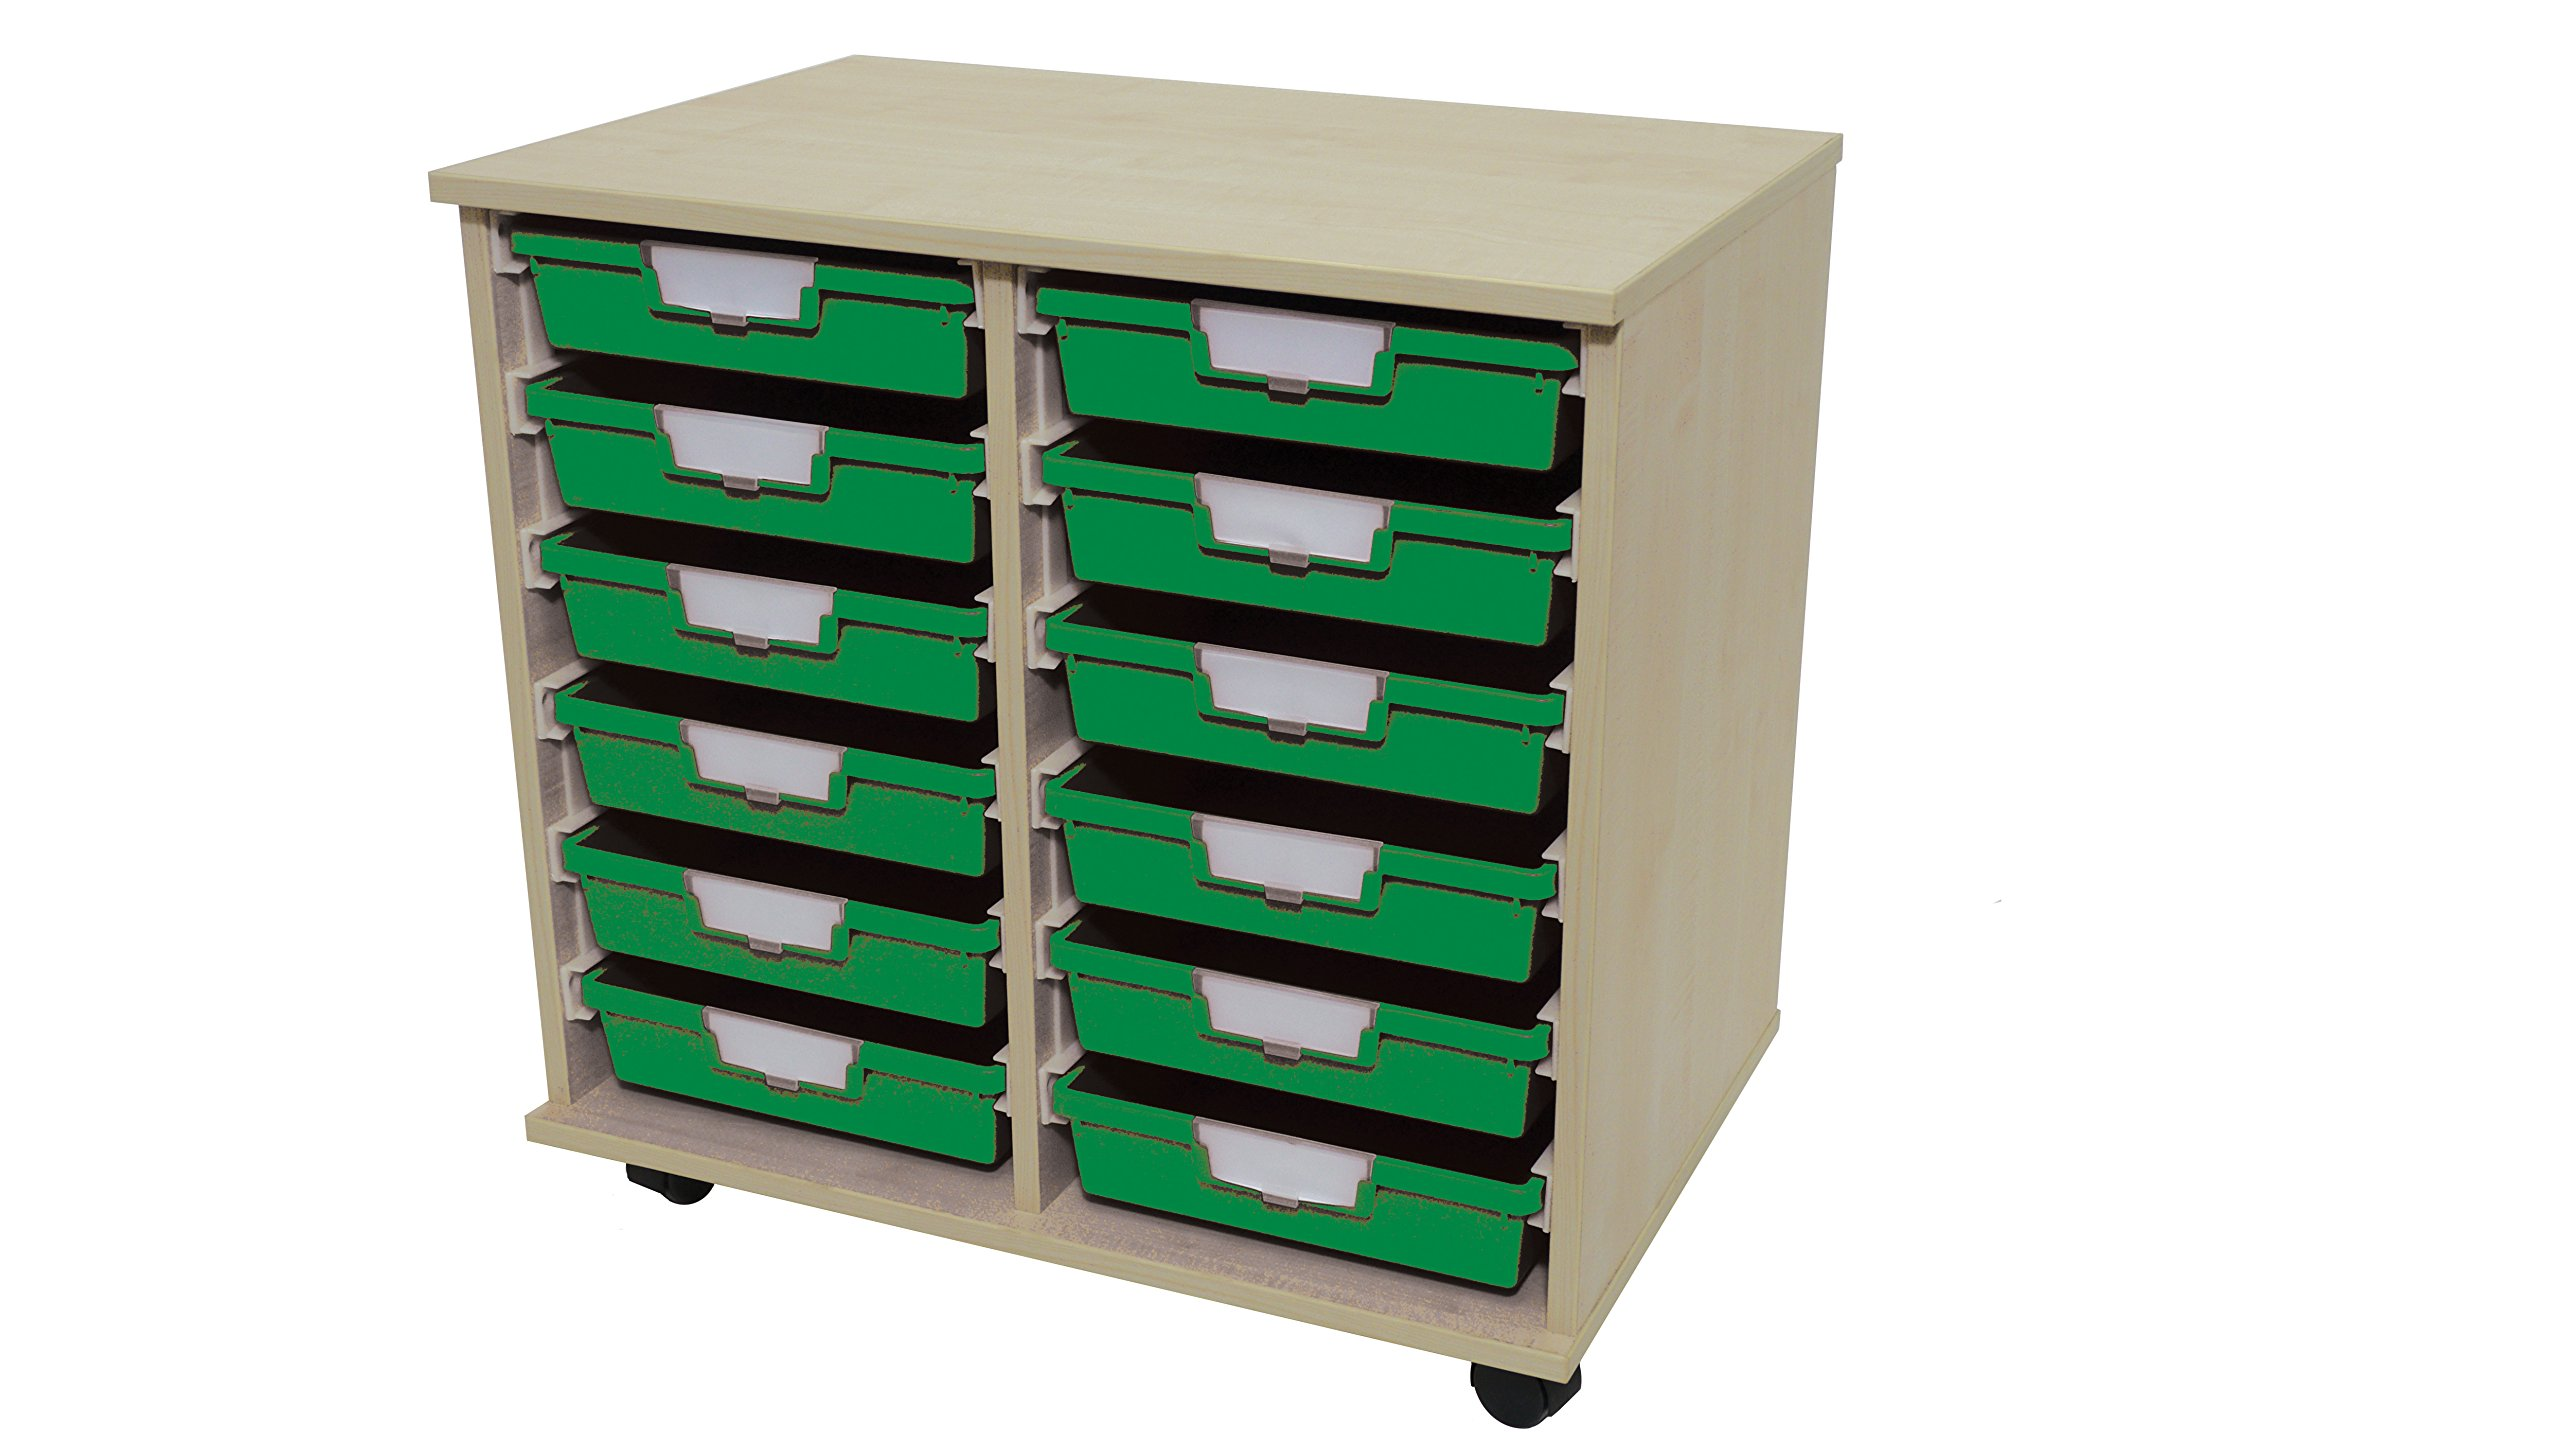 Swift 'Slim Line' Wood Cart 12 Tray Green by StorSystemUSA (Image #2)